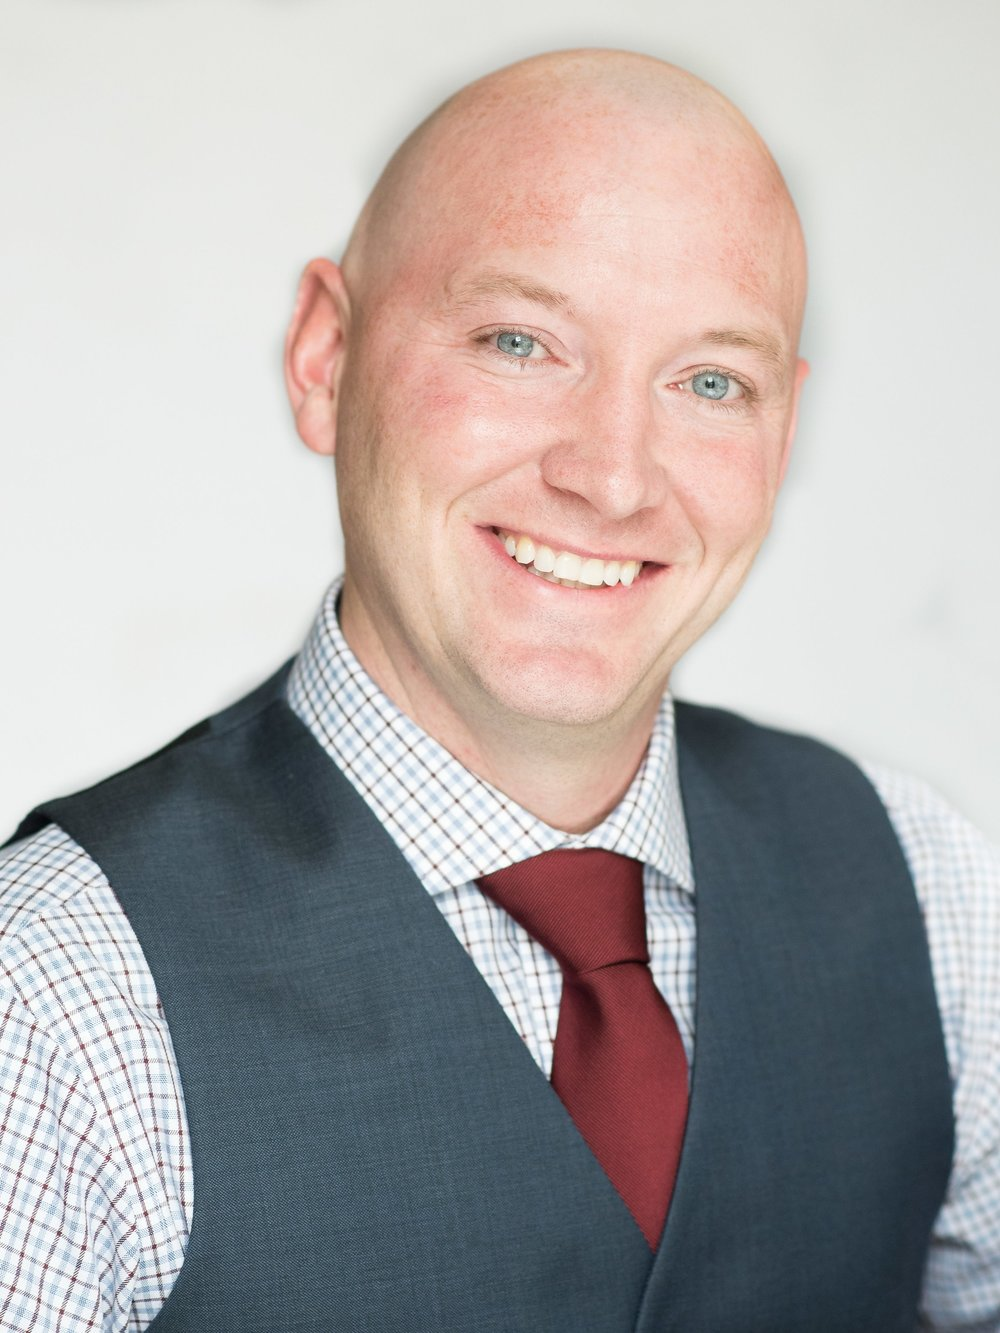 Jared Beuther,CIR,CPC <i>Director of Talent Acquisition</i>